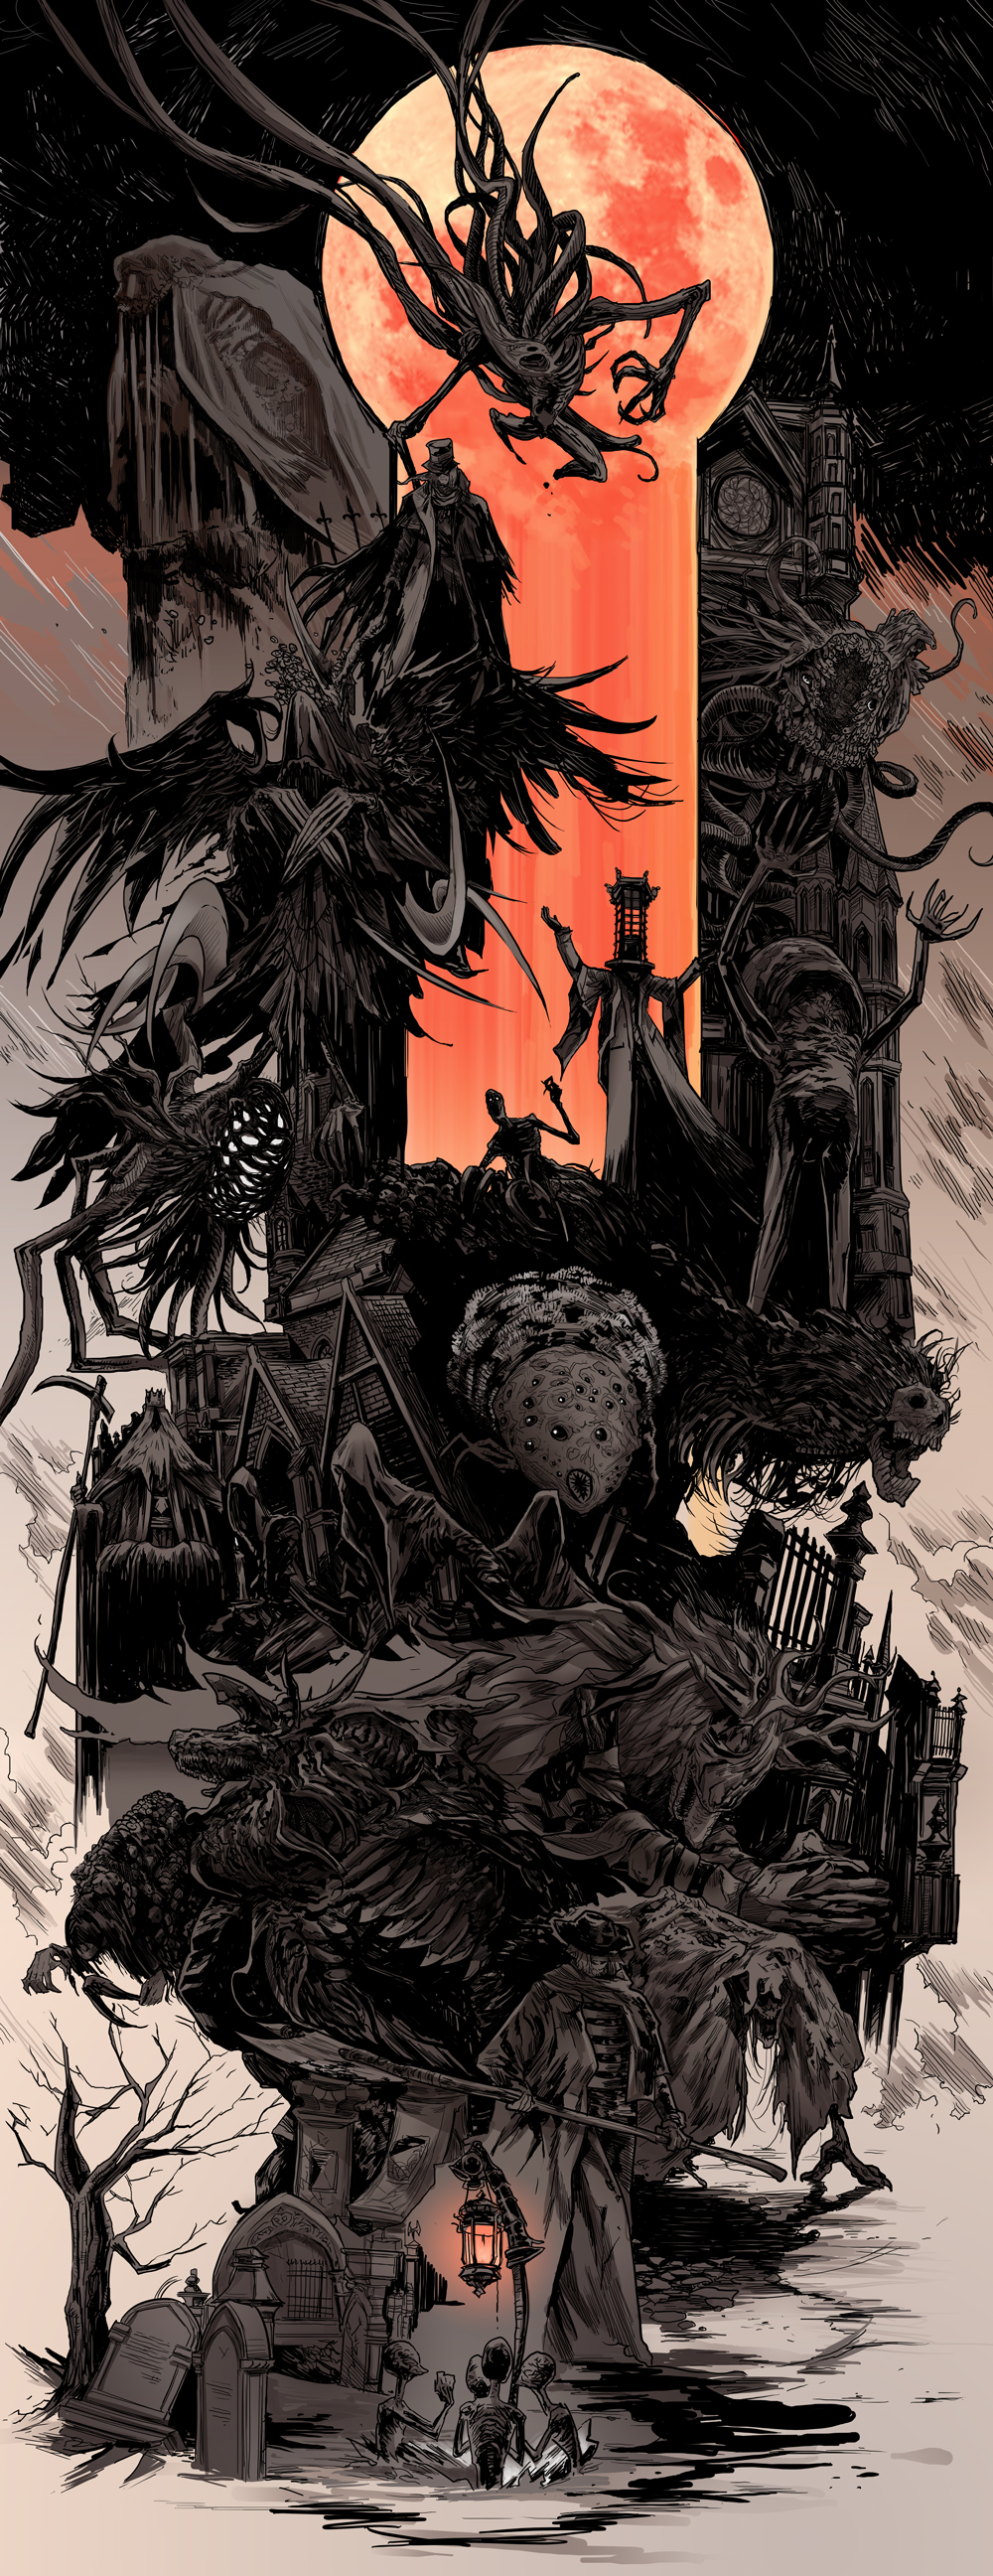 Bloodborne Bosses by uger